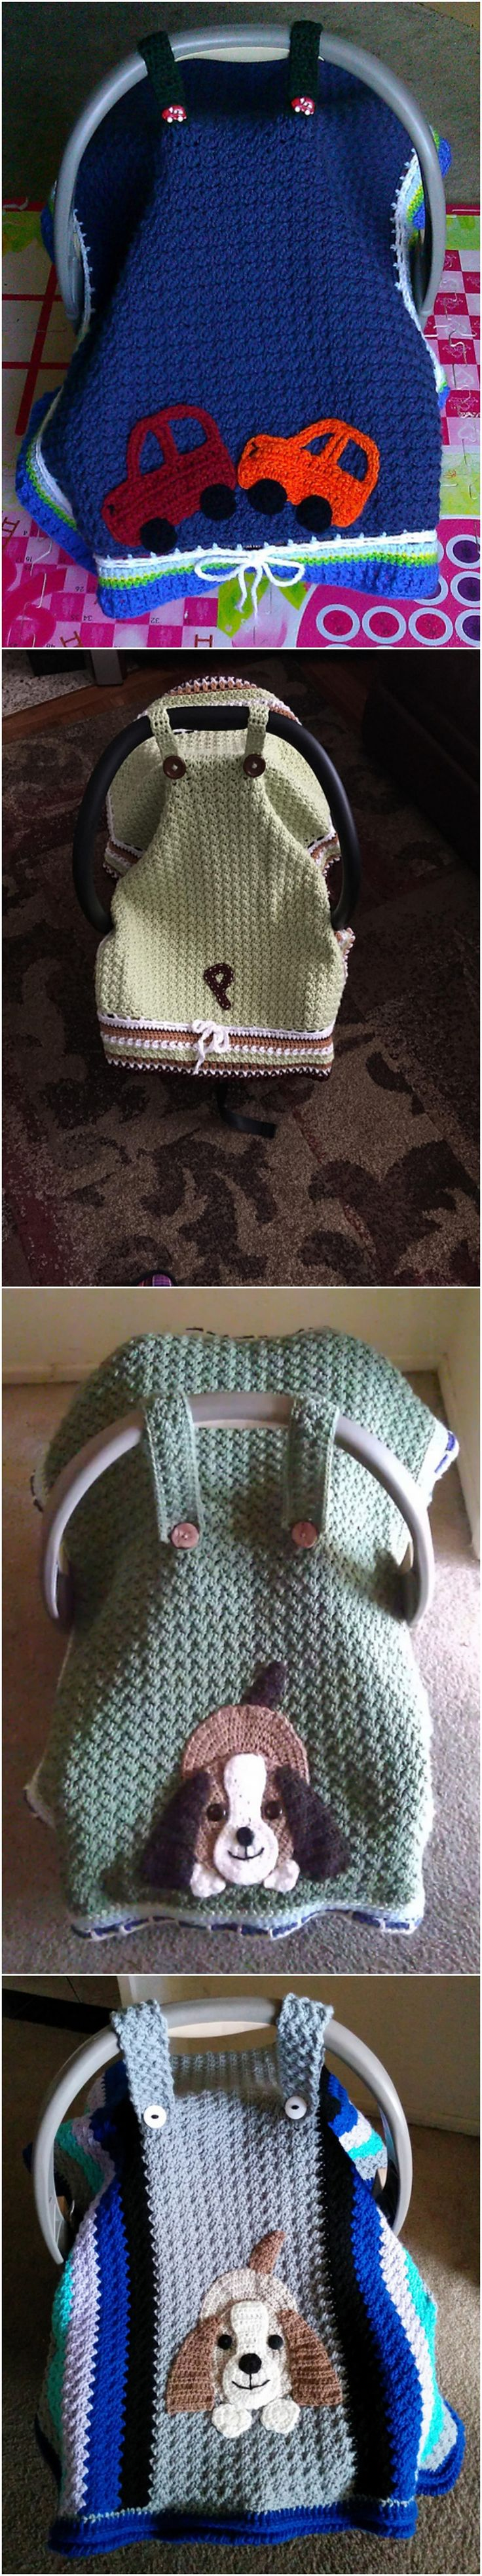 Free Crochet Pattern For Baby Car Seat Cover : 25+ best ideas about Car seat cover pattern on Pinterest ...